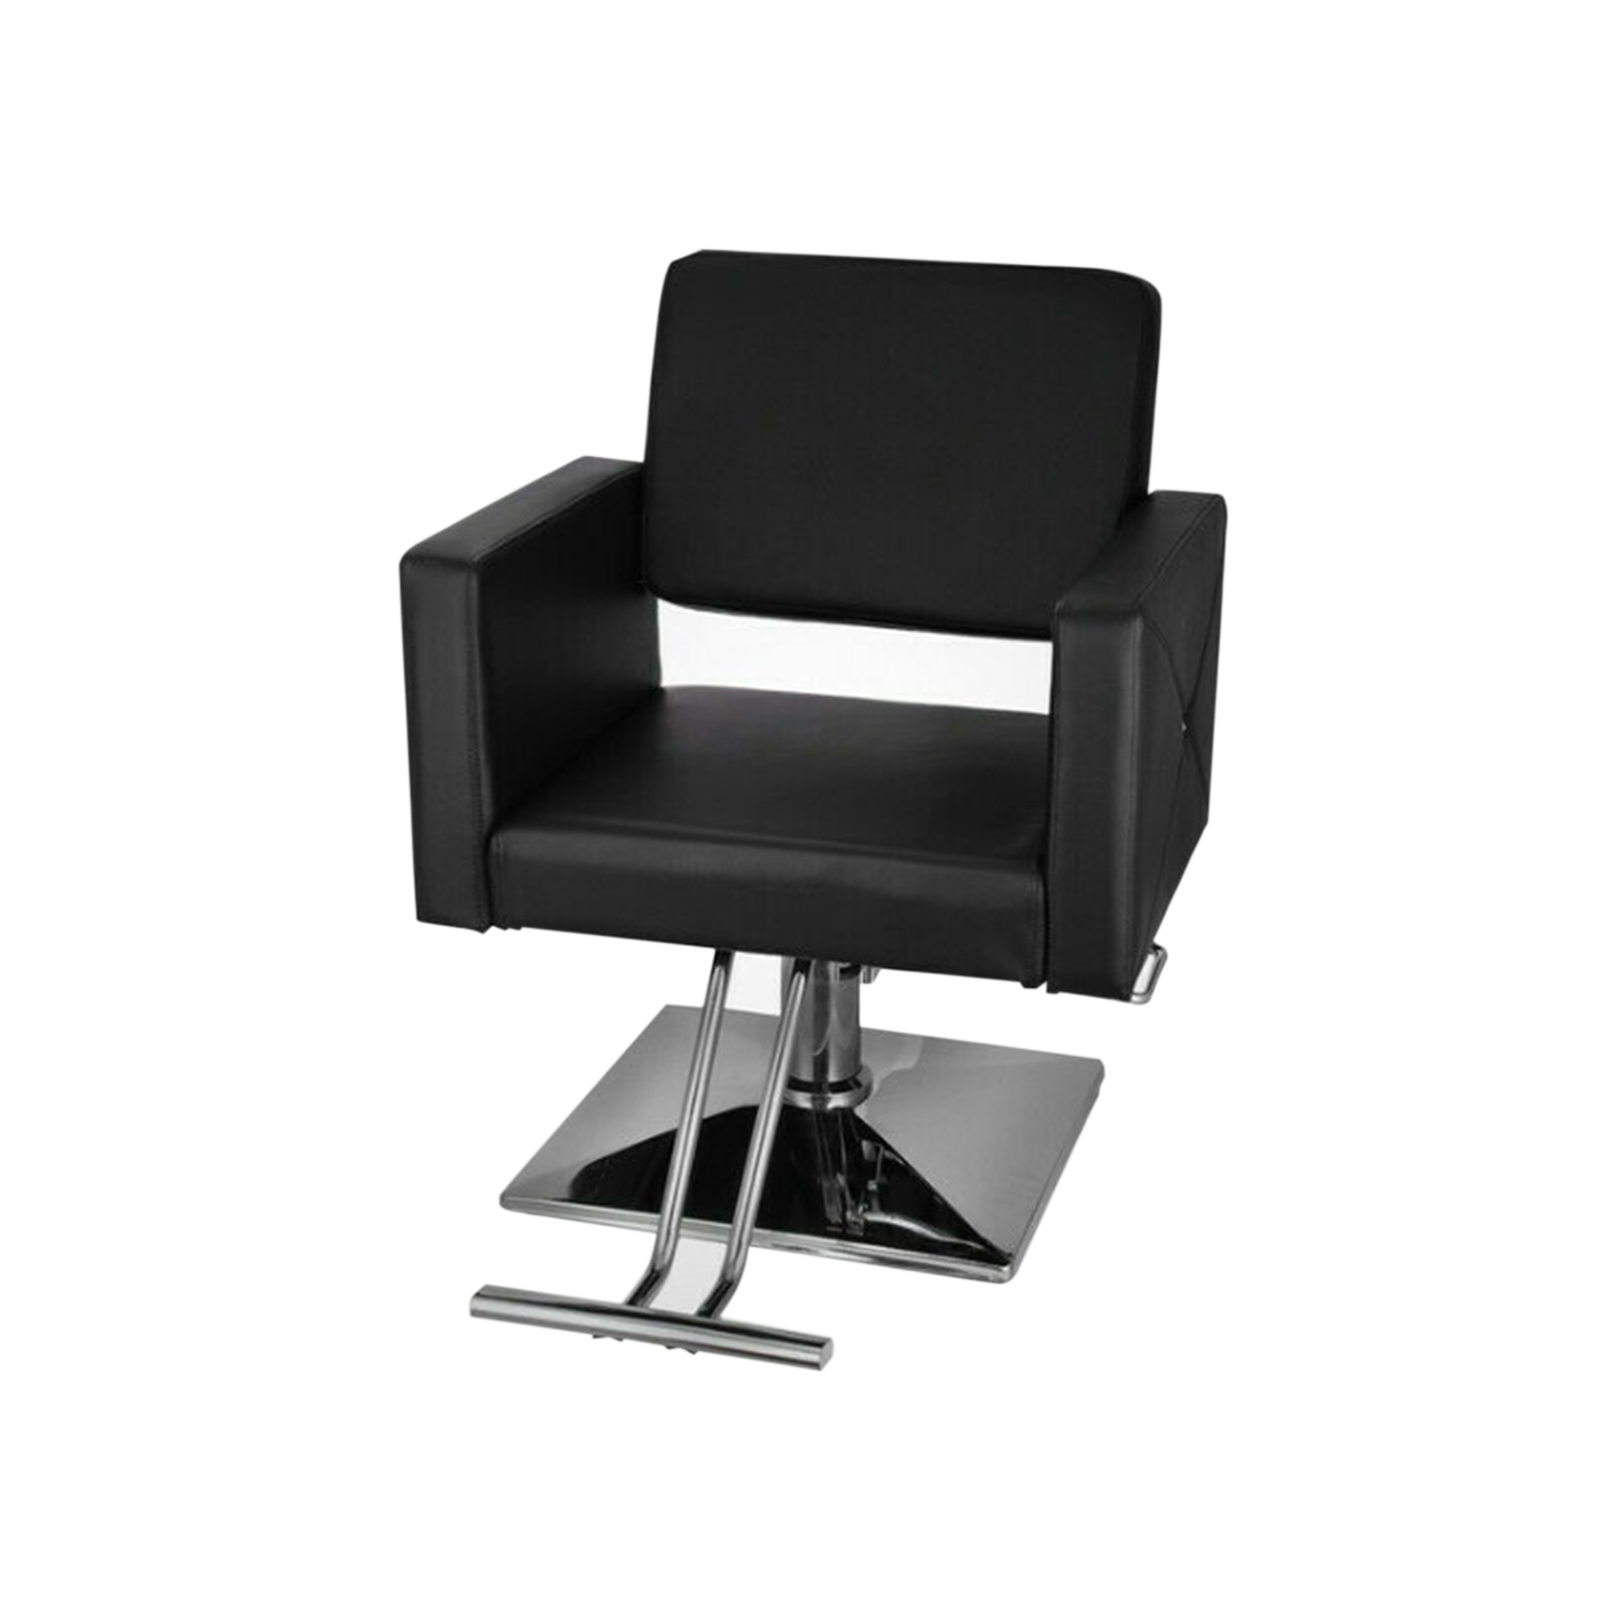 Salon Hydraulic Styling Chair In Black Upholstery | Gogobli